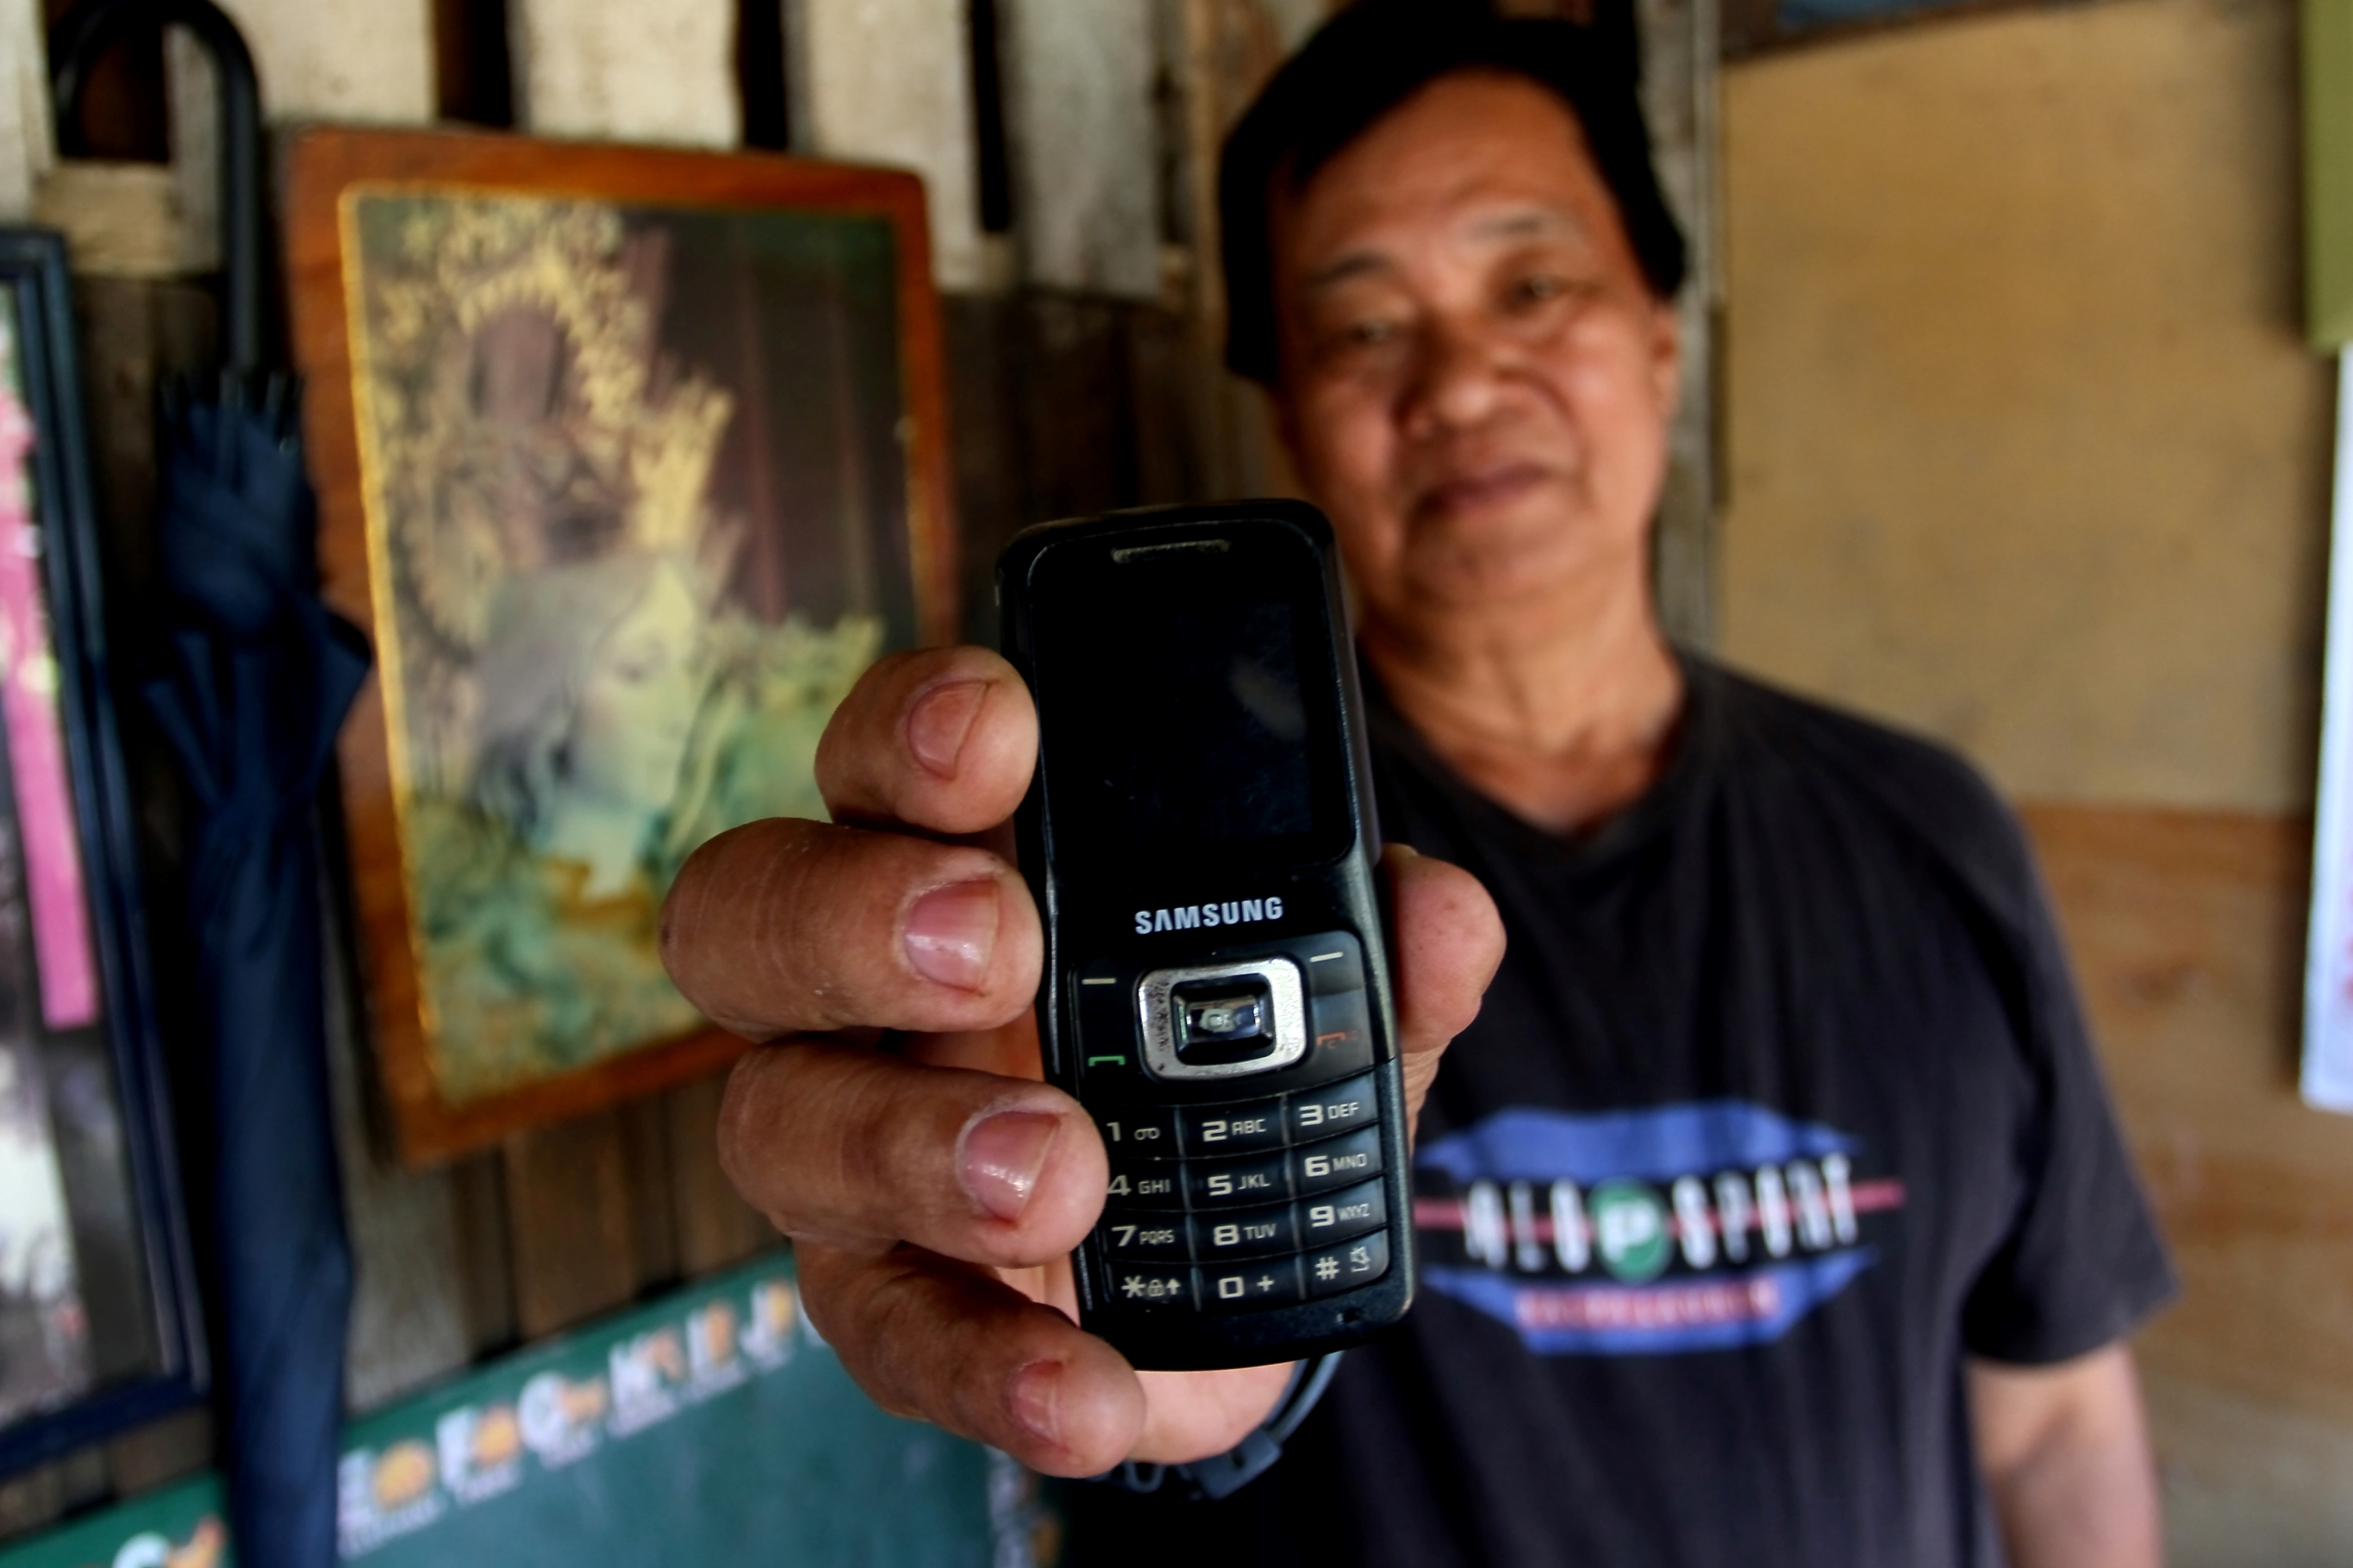 Cesar Esguerra, a 60-year-old devout Catholic, shows off his mobile phone and a portrait of the Virgin Mary at his flood-damaged home in   Pasig, a suburban area east of Manila. Floods swept through much of the capital at the height of Tropical Storm Kets